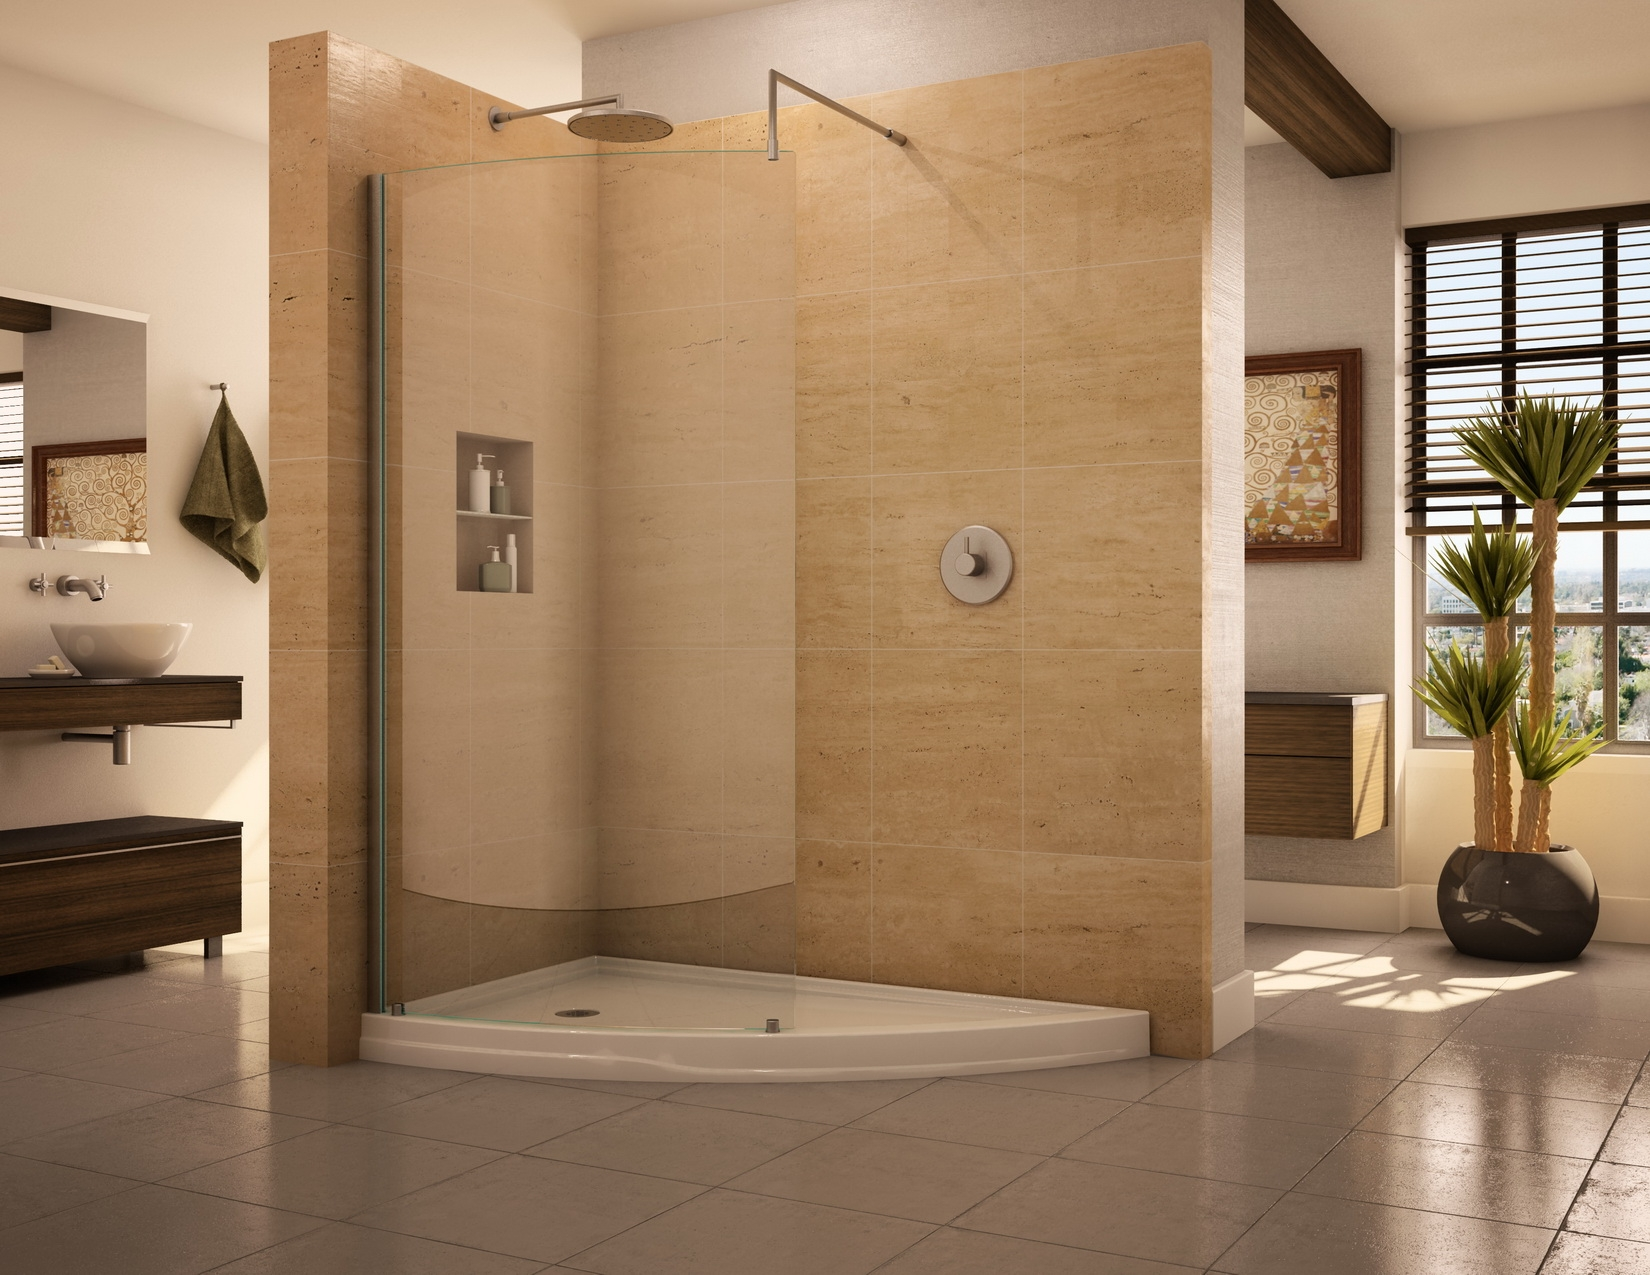 Doorless Shower Designs Teach You How To Go With The Flow - Tile shower designs without doors